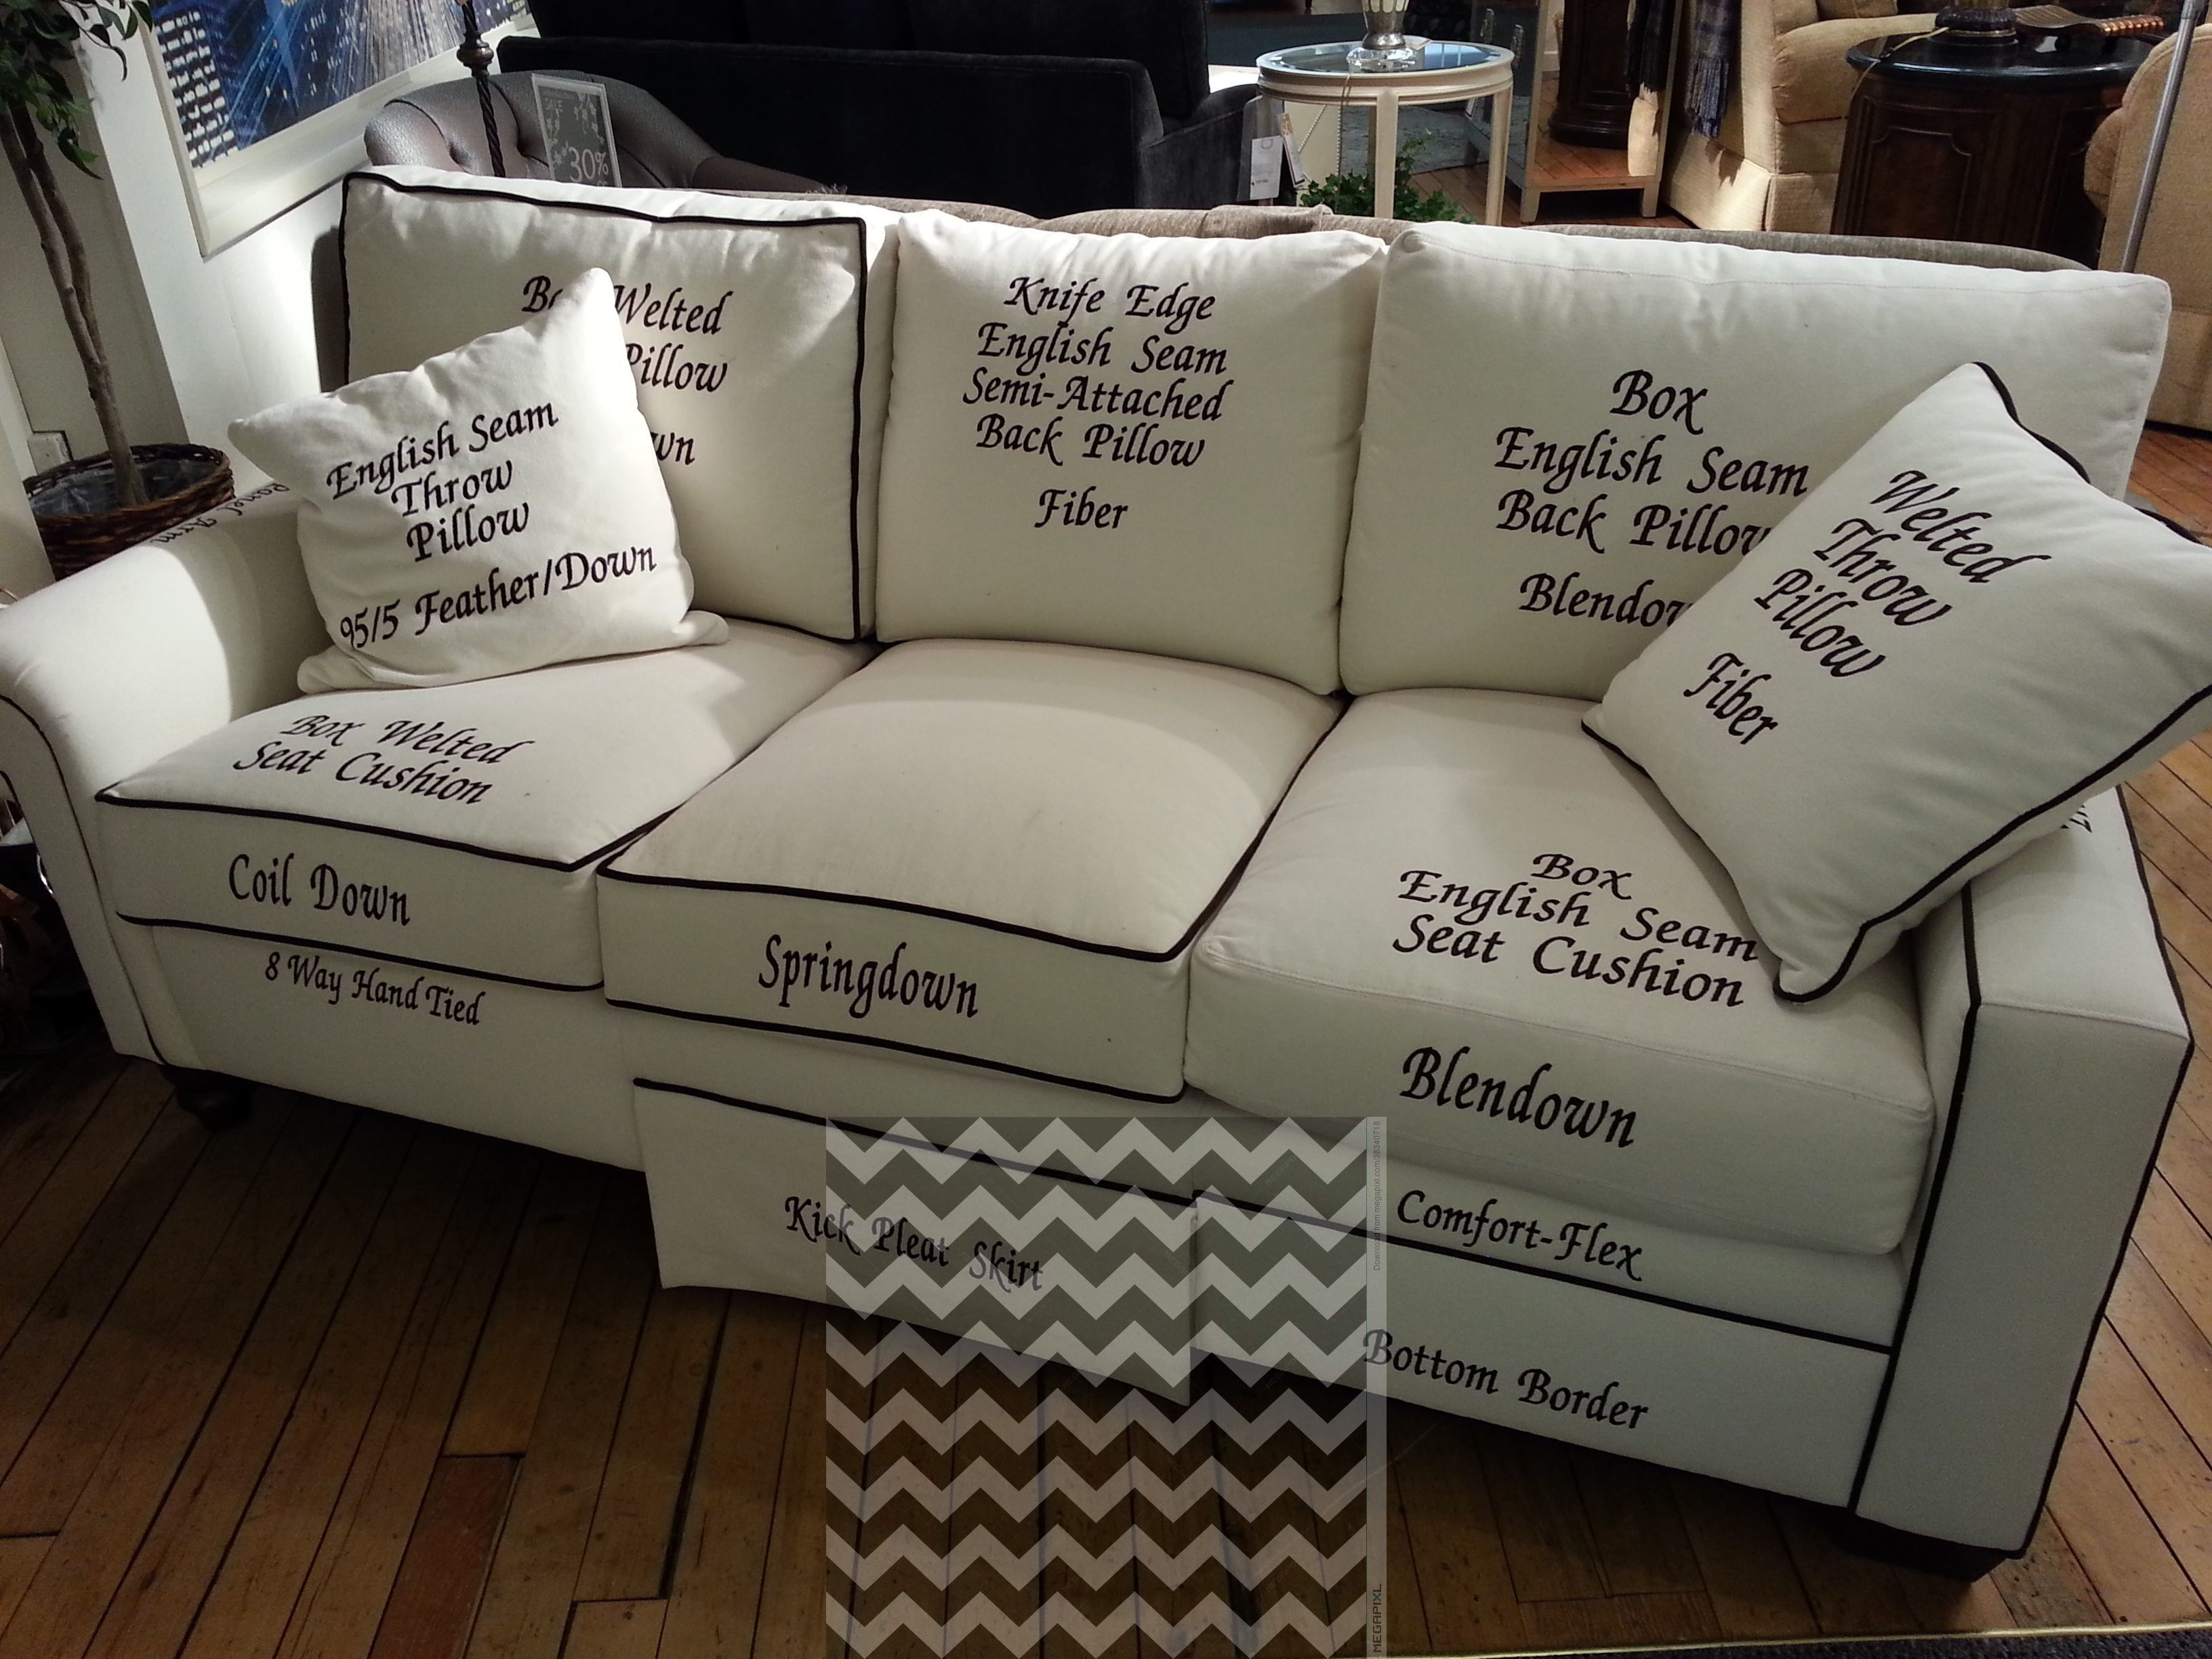 Upholstery Couch Diy 9 Eye Opening Diy Ideas Upholstery Couch Upholstery